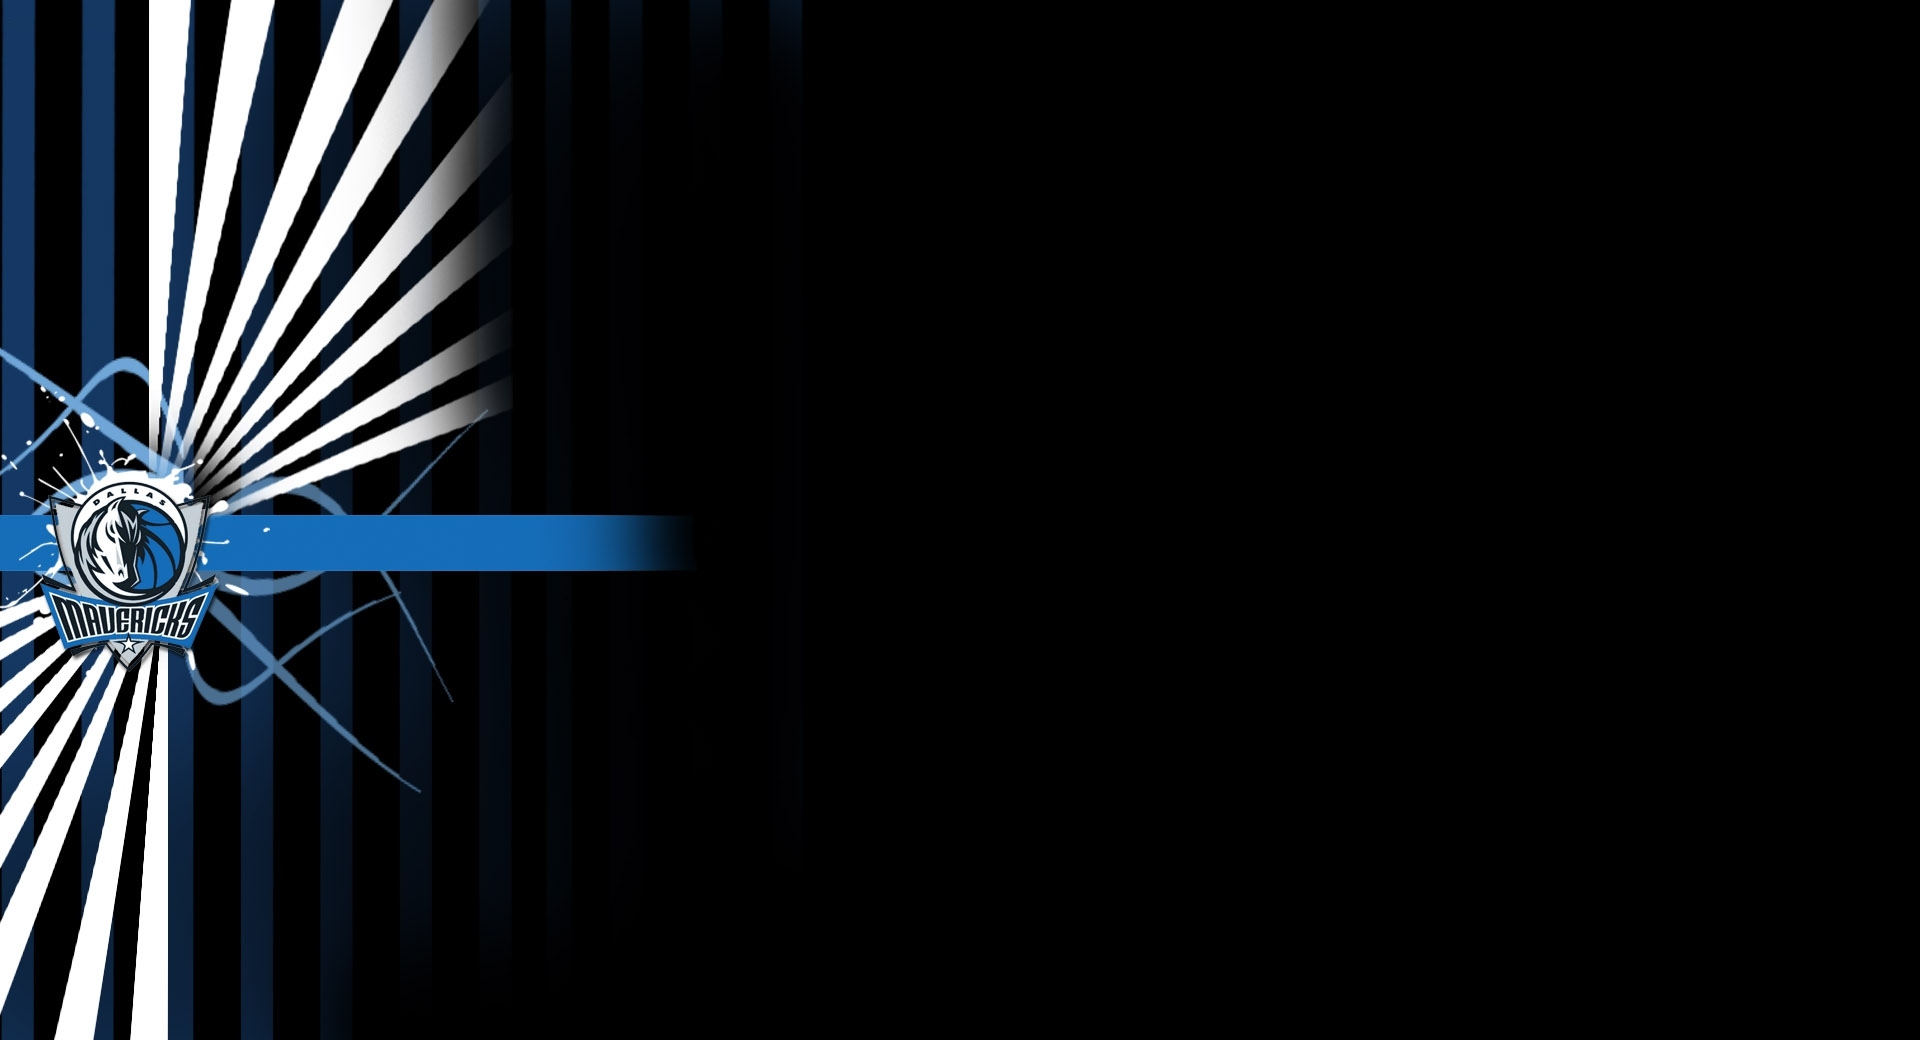 Wallpaperwiki Beautiful Art Dallas Mavericks Wallpaper PIC